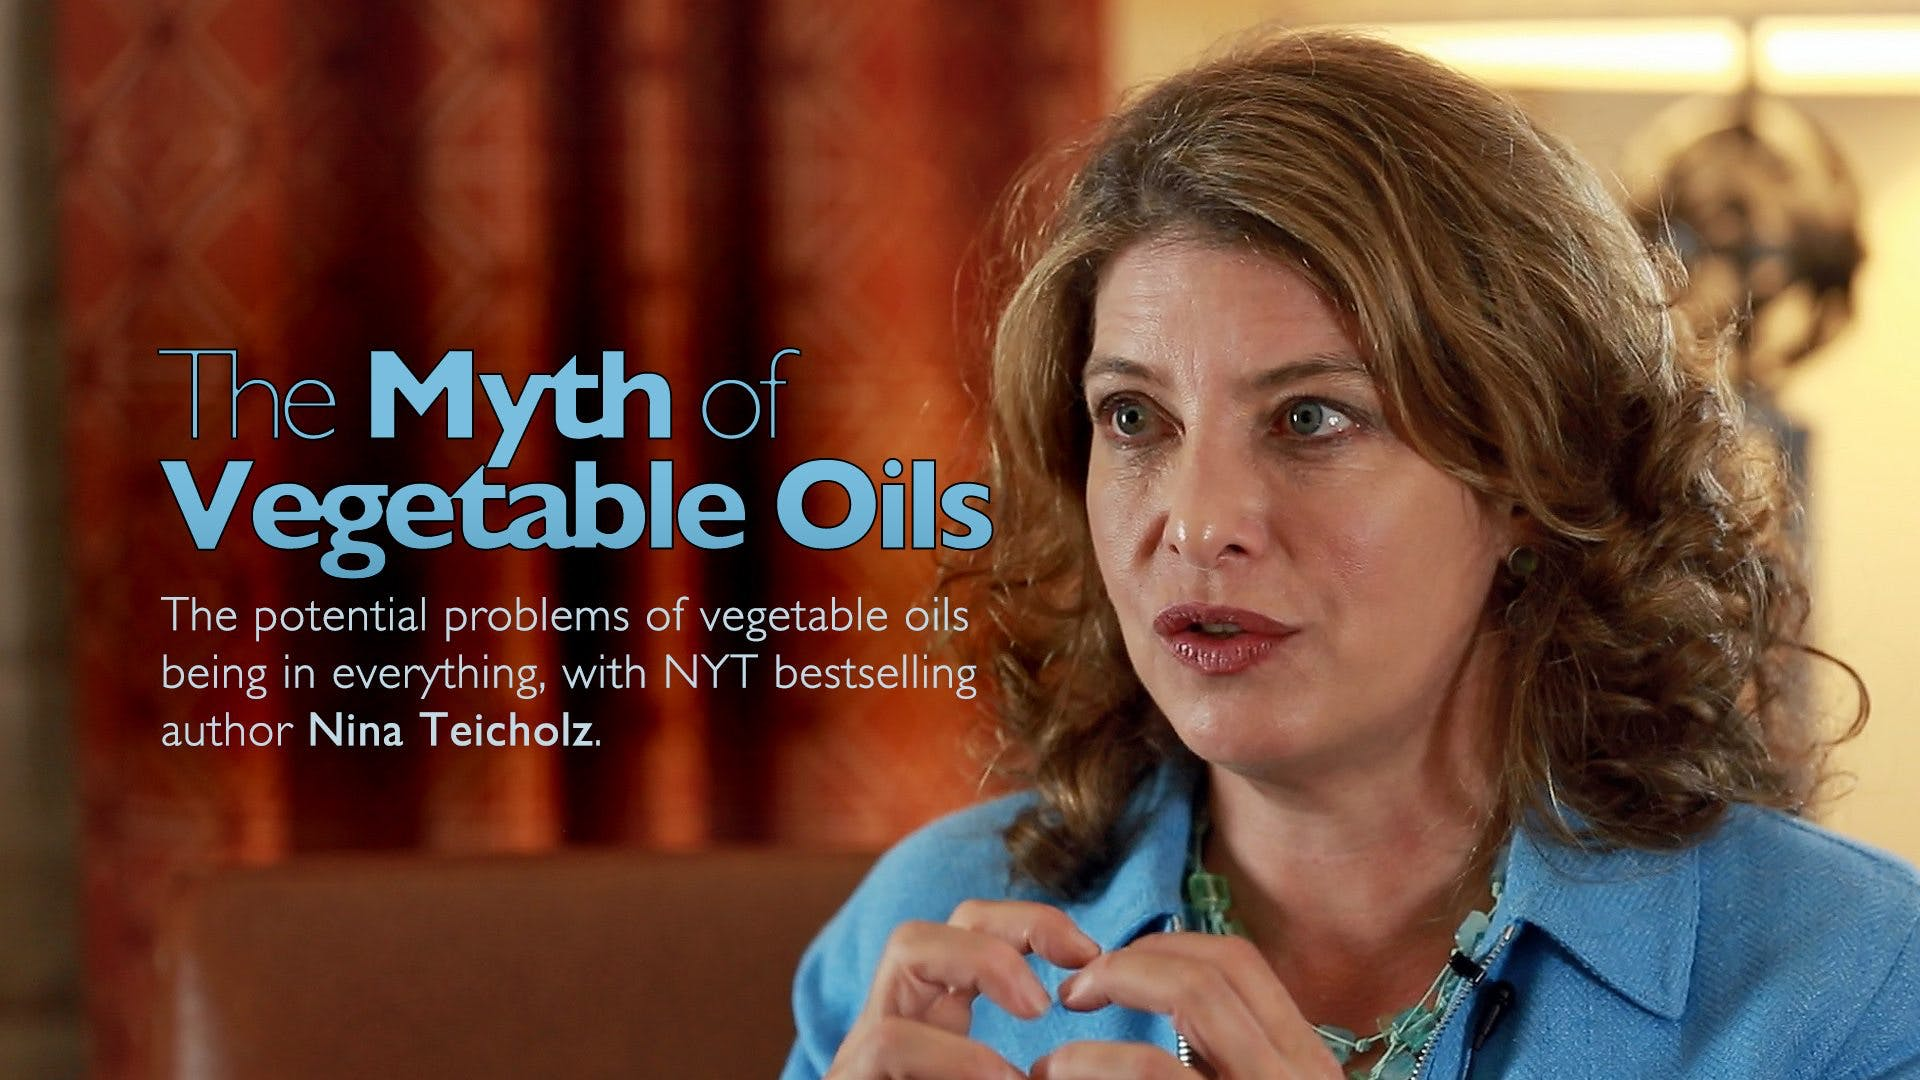 The Myth of Vegetable Oils